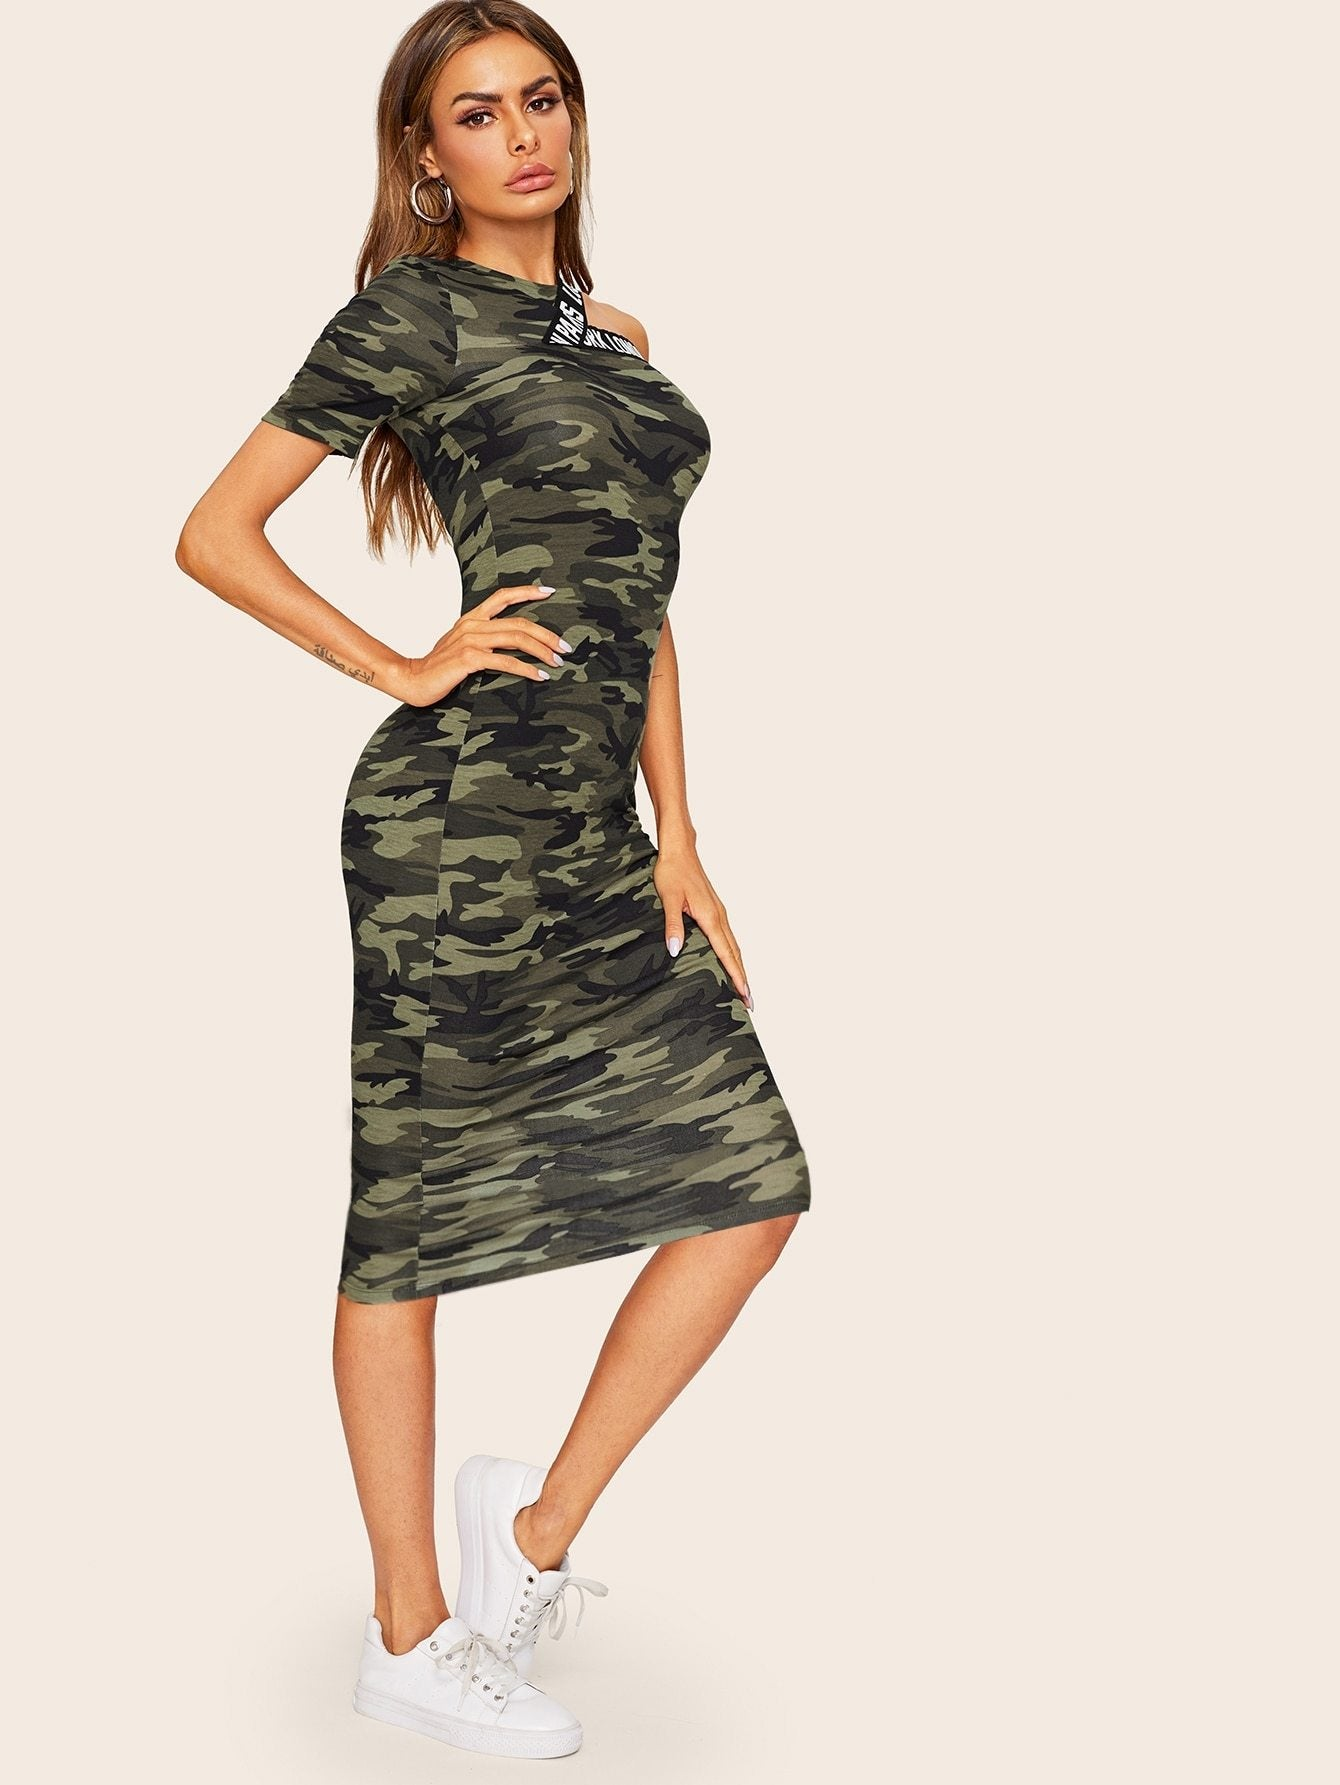 Asymmetrical Shoulder Letter Tape Camo Dress - StyleCamo